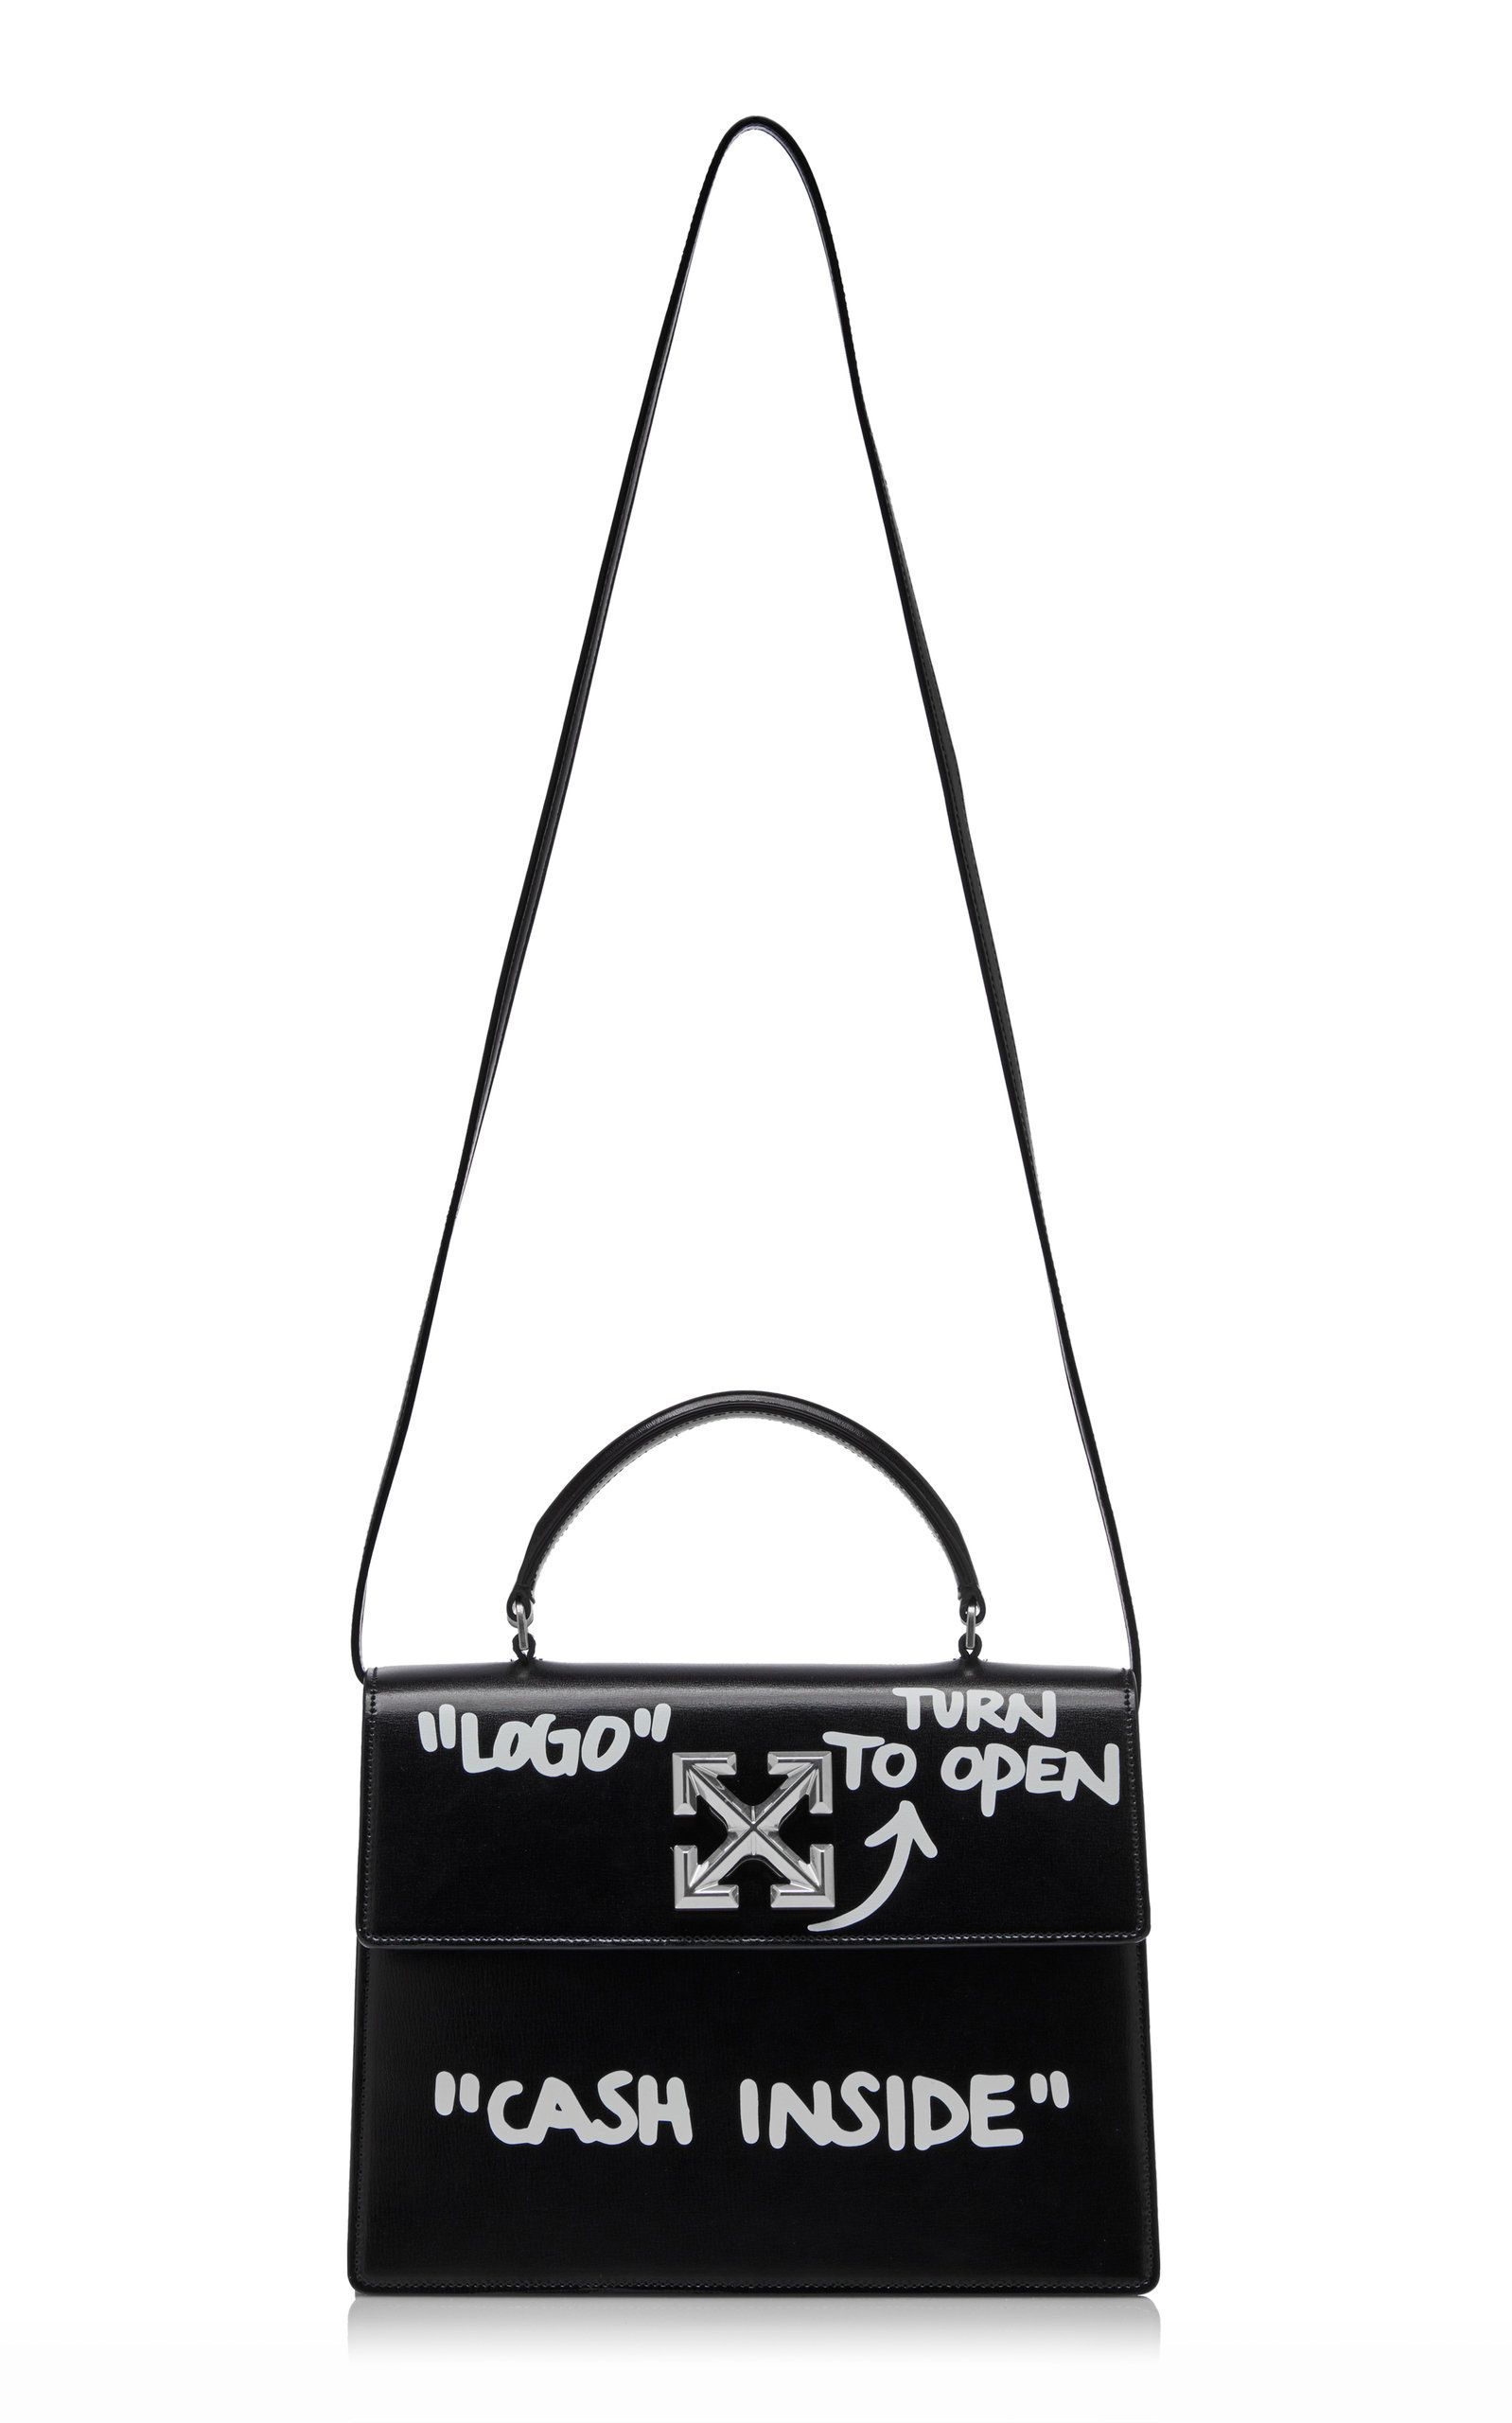 Jitney 28 Cash Inside Leather Bag By Off White Co Virgil Abloh For